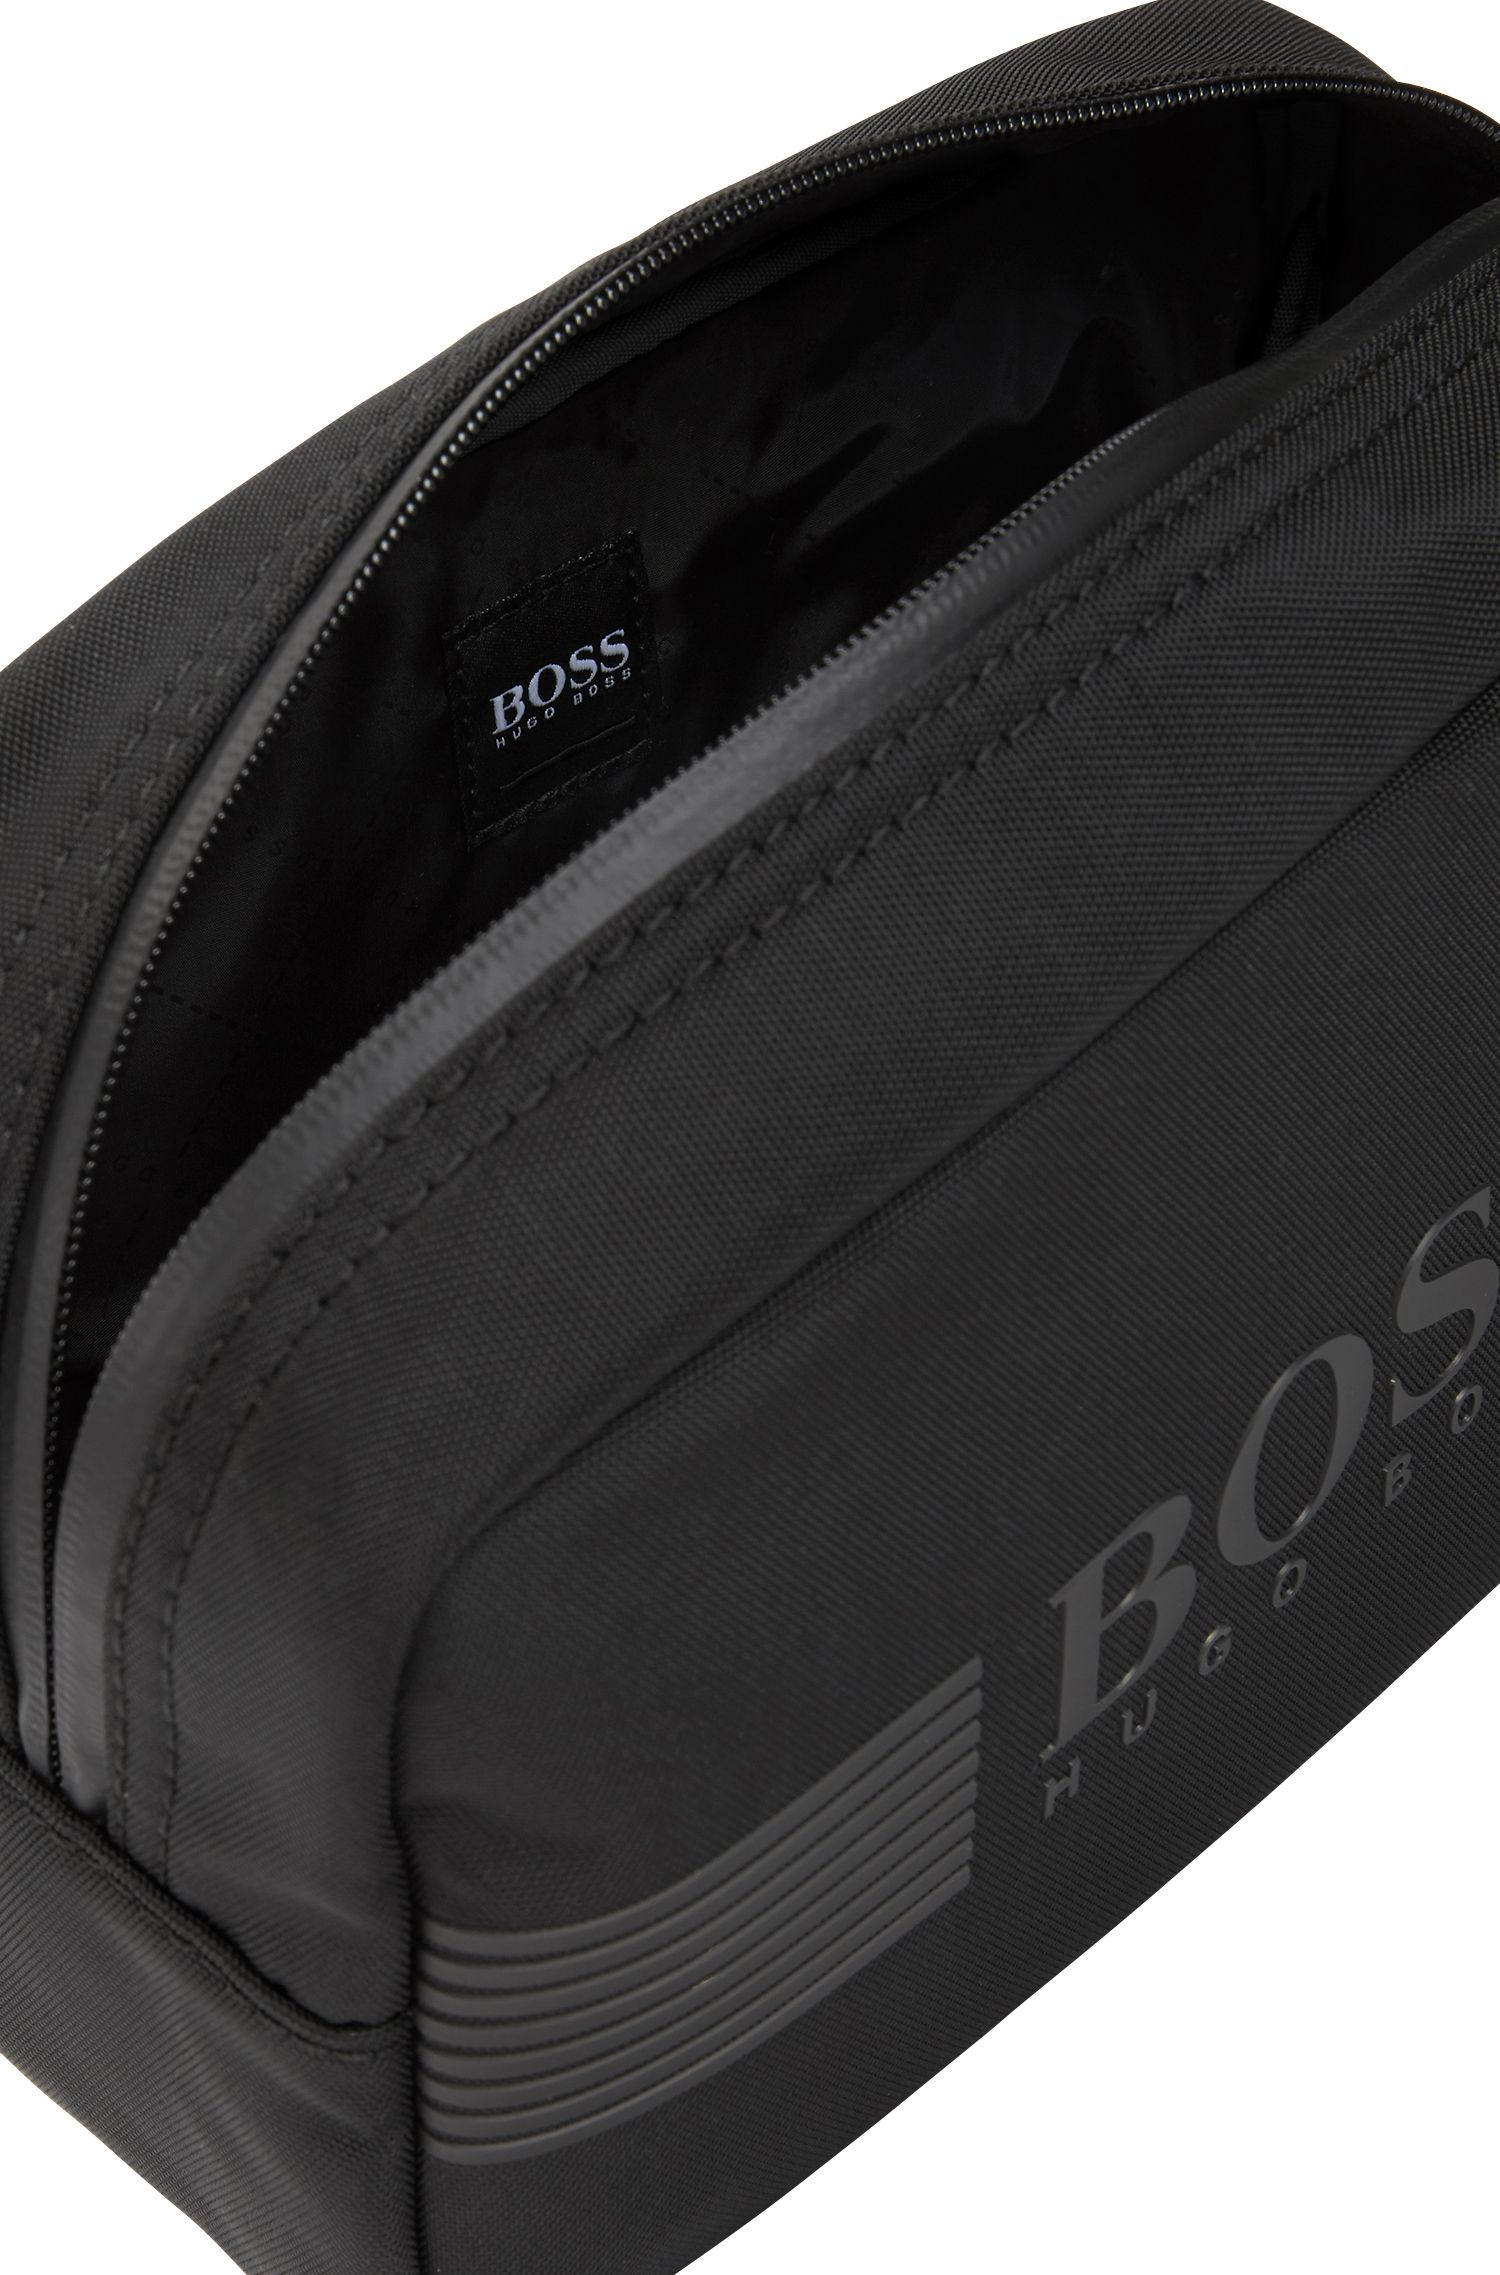 Toiletry bag with Harry's shaving set, Black